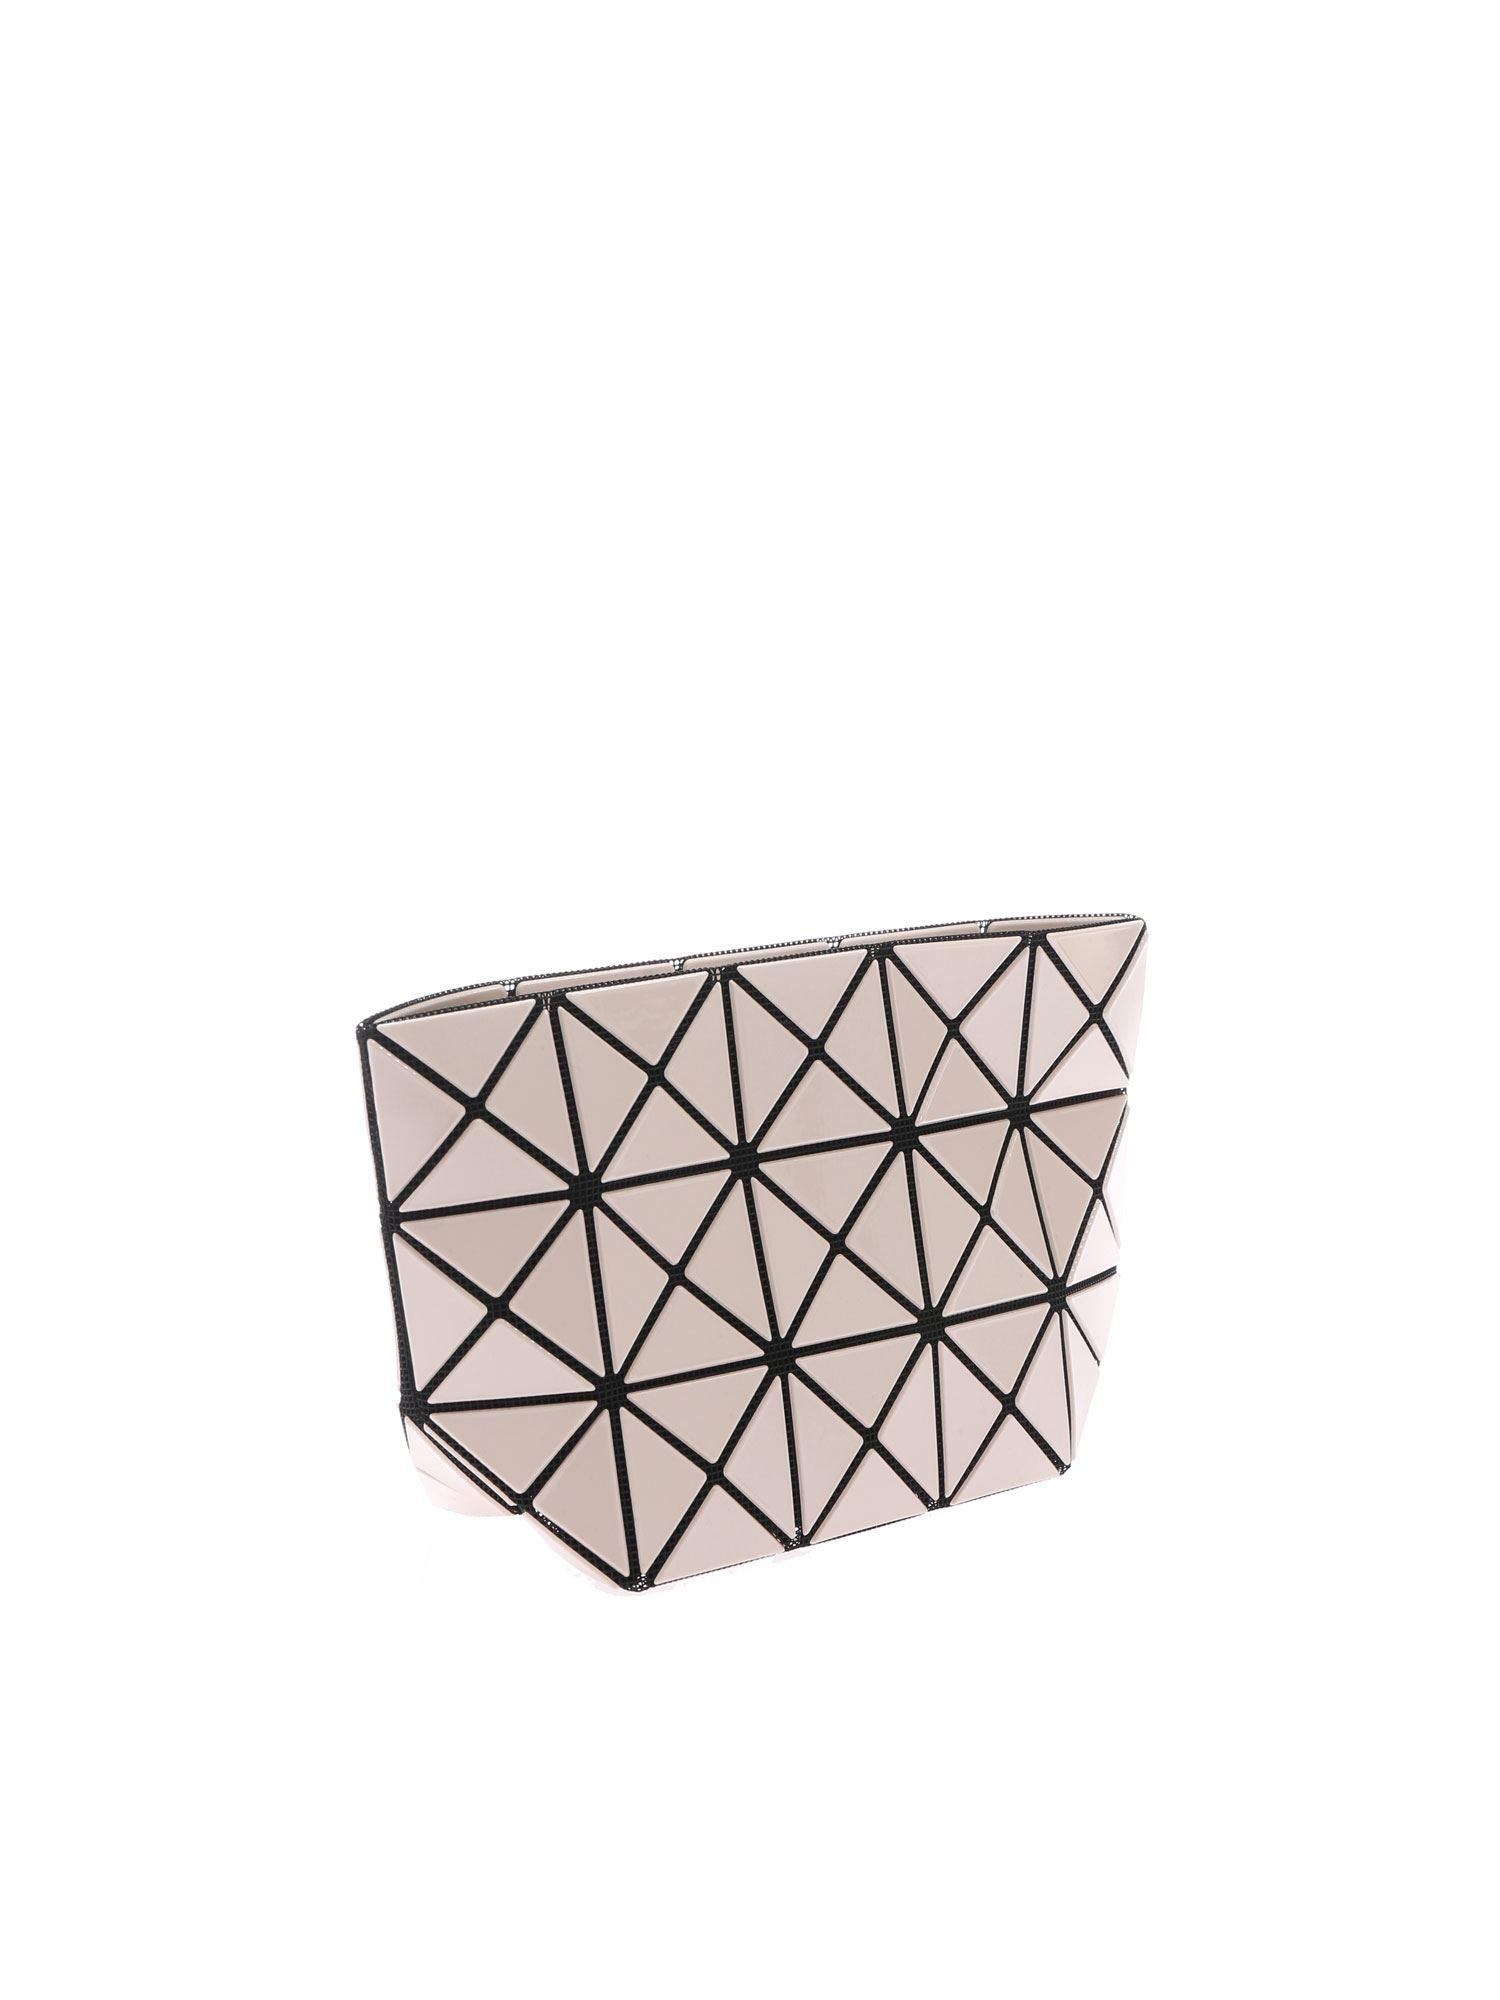 bf023dd0f84e Lyst - Bao Bao Issey Miyake Beige Prism Clutch With Triangles Motif in  Natural - Save 23.22834645669292%